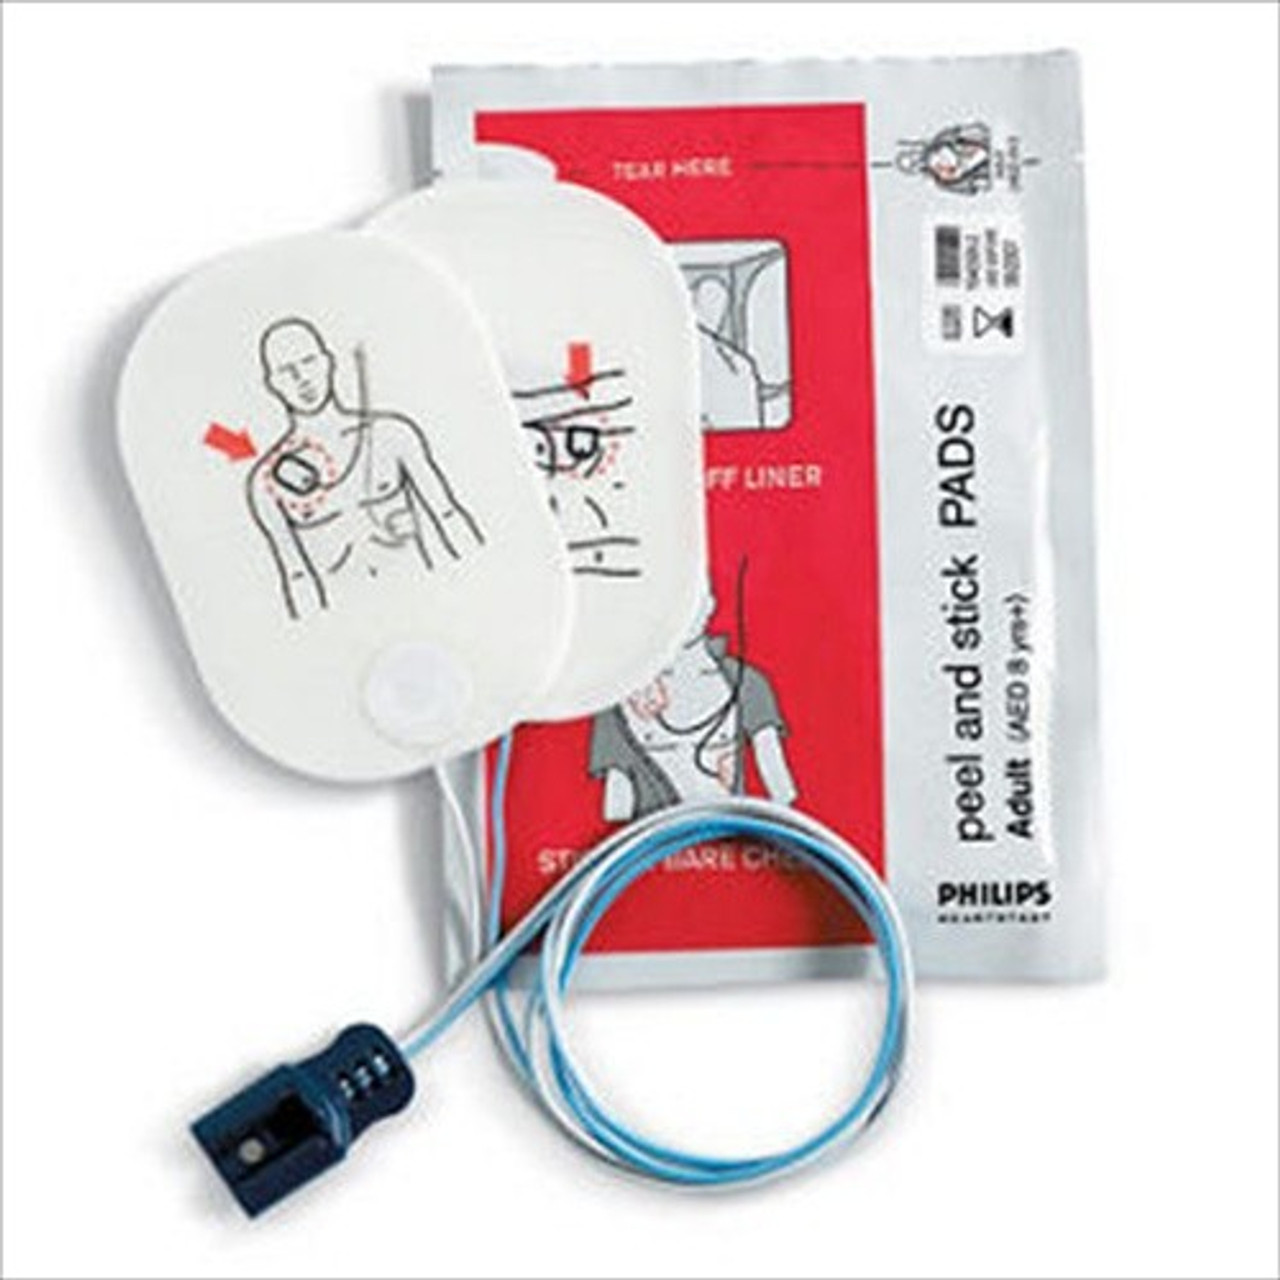 FR / FR2 Adult Defibrillation Pads by Philips